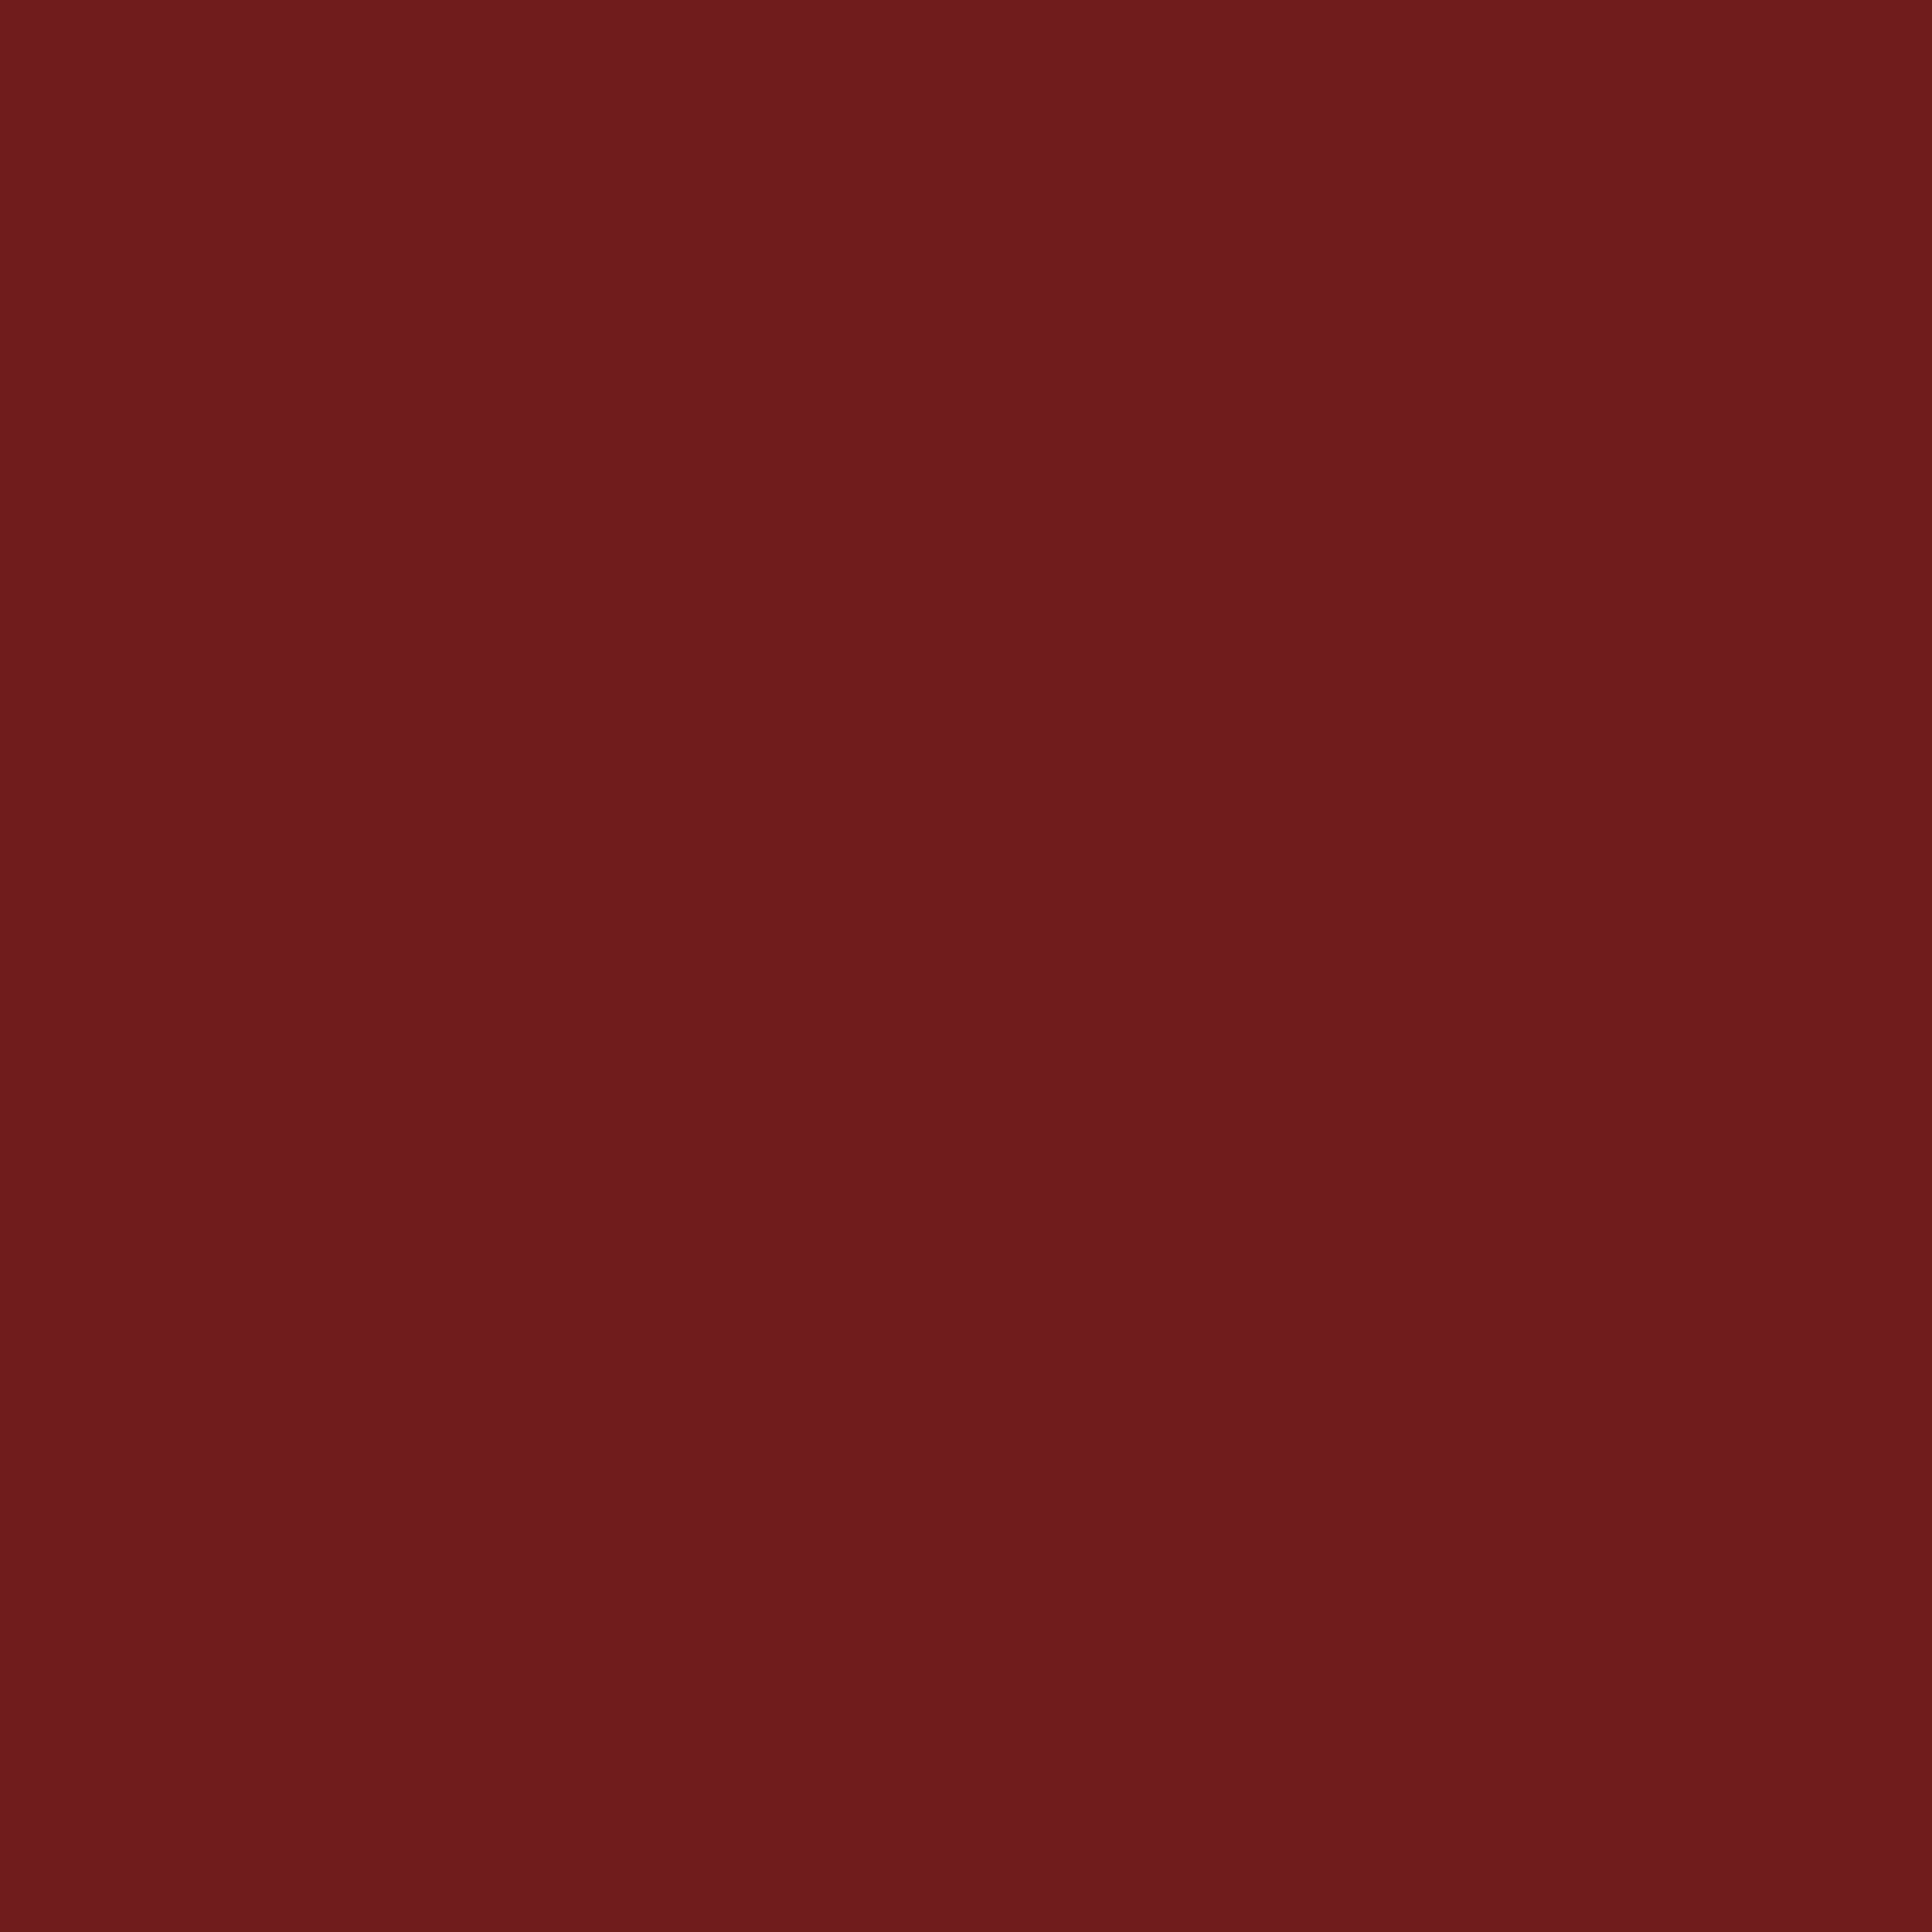 2732x2732 Prune Solid Color Background